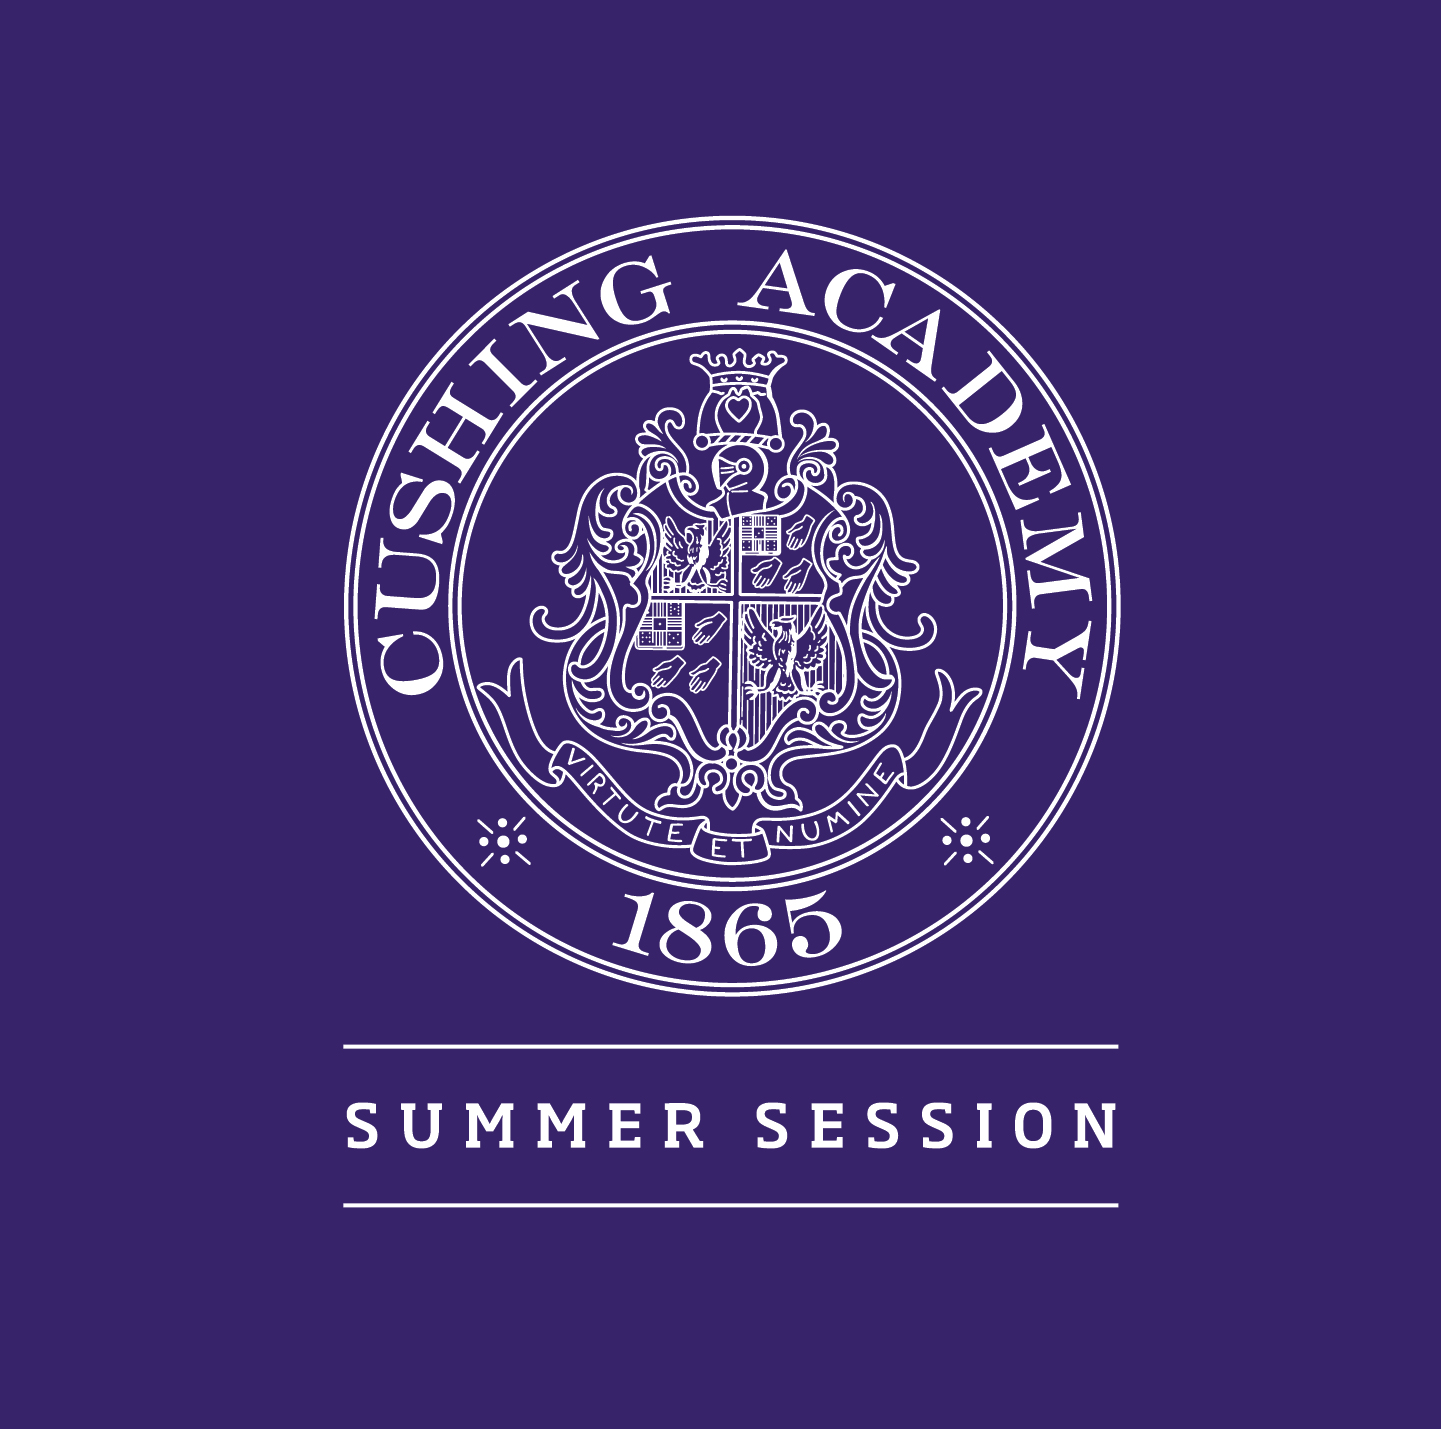 Summer Program Cushing Academy Summer Session